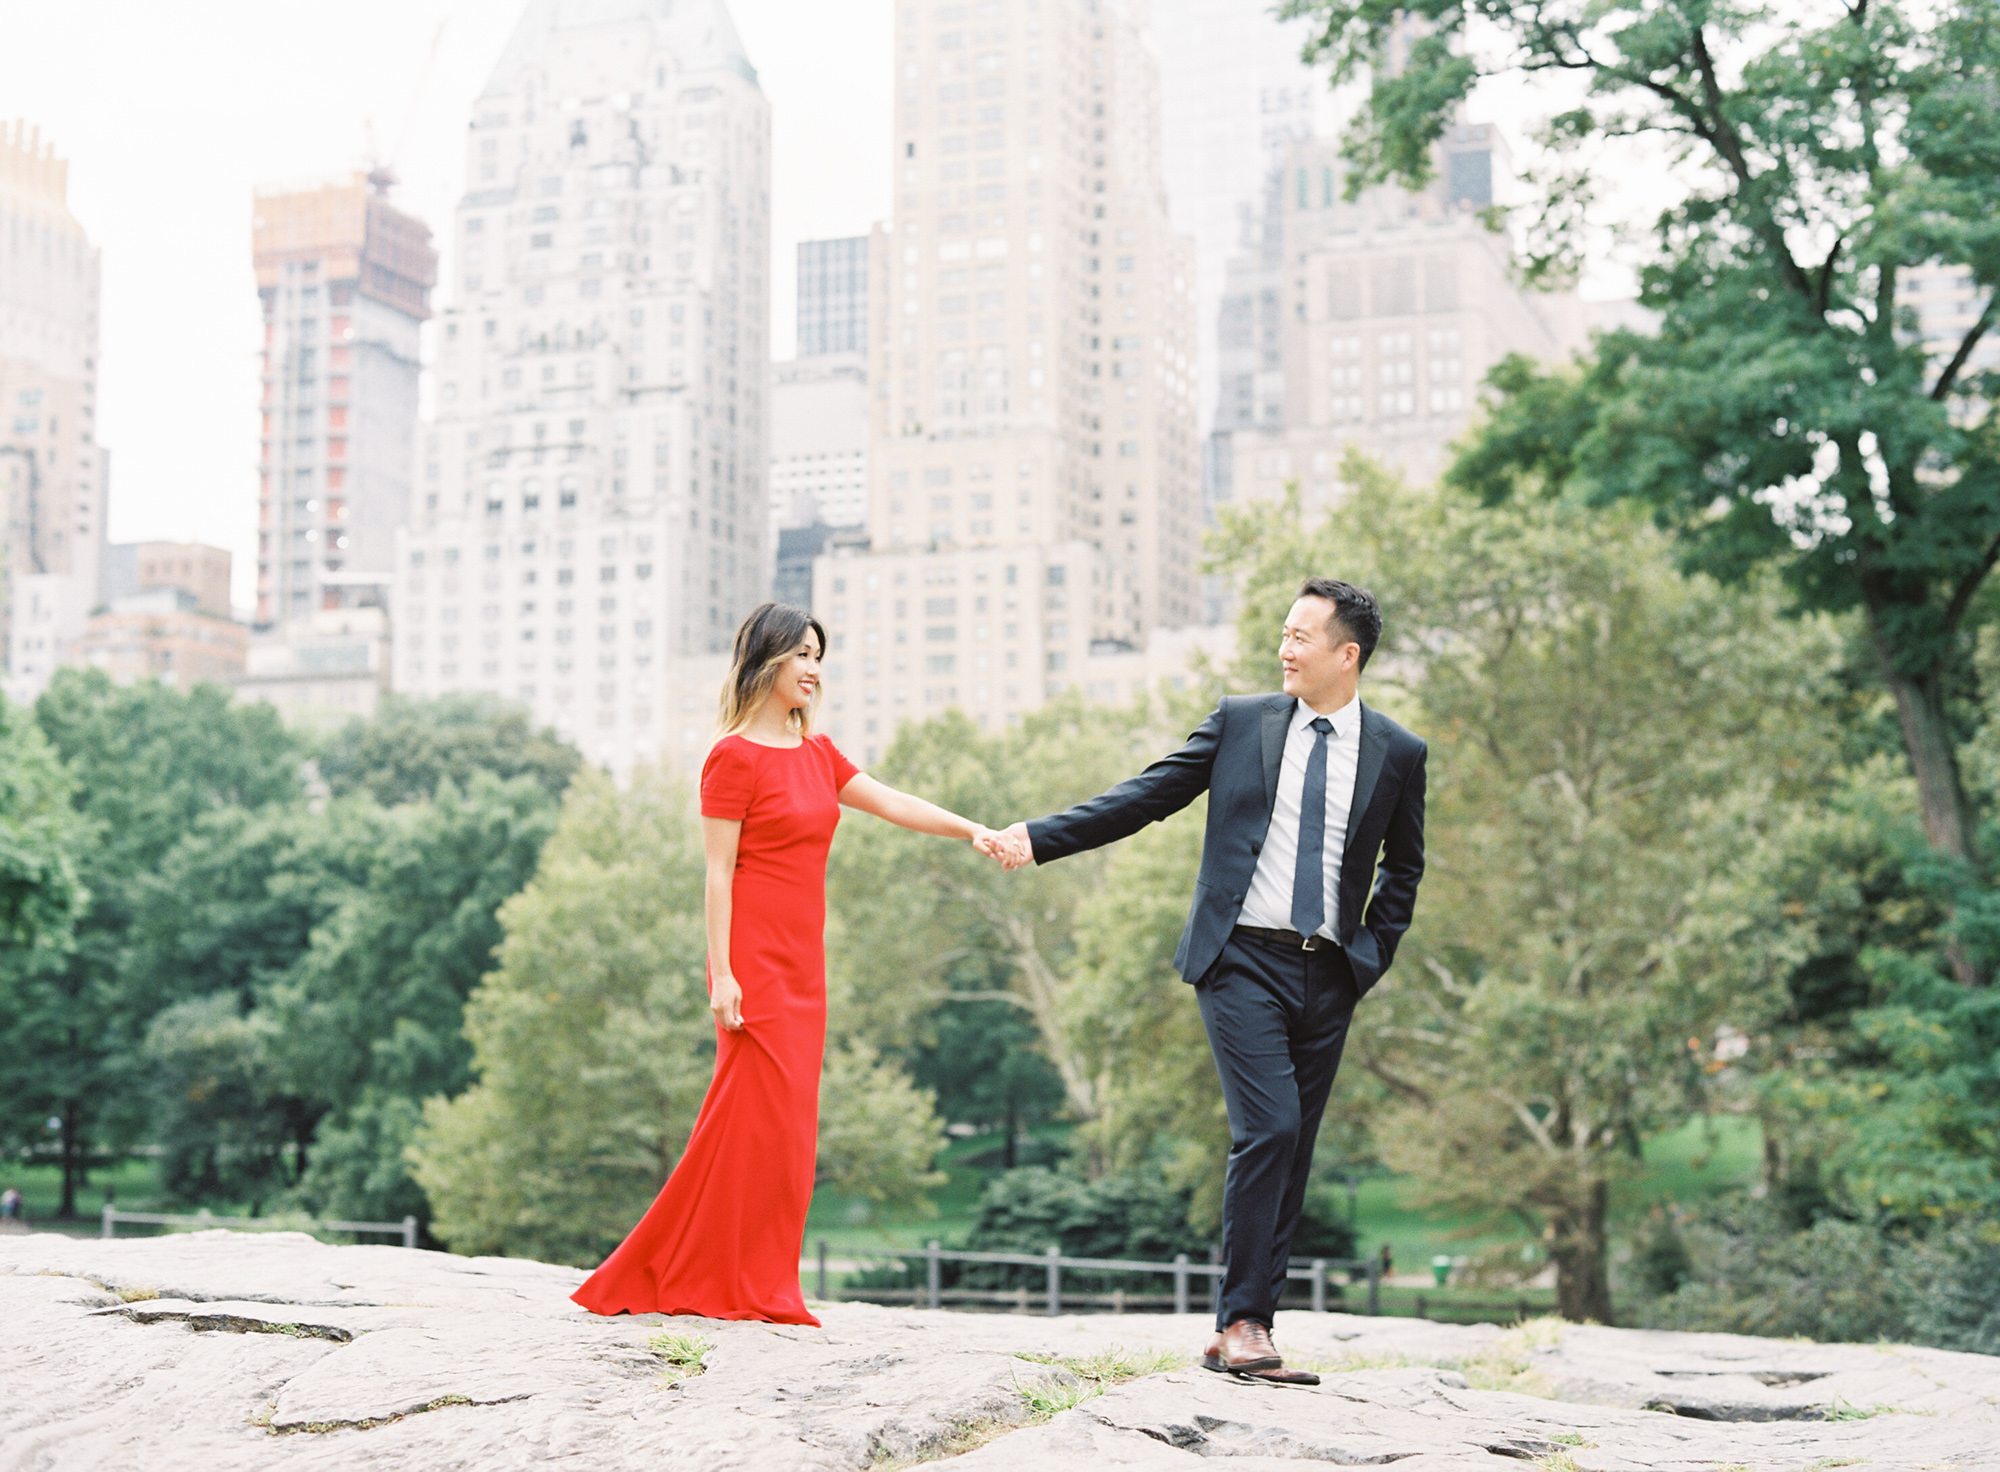 New-York-Film-Engagement-Session-Brooklyn-Bridge-Central-Park-27.jpg